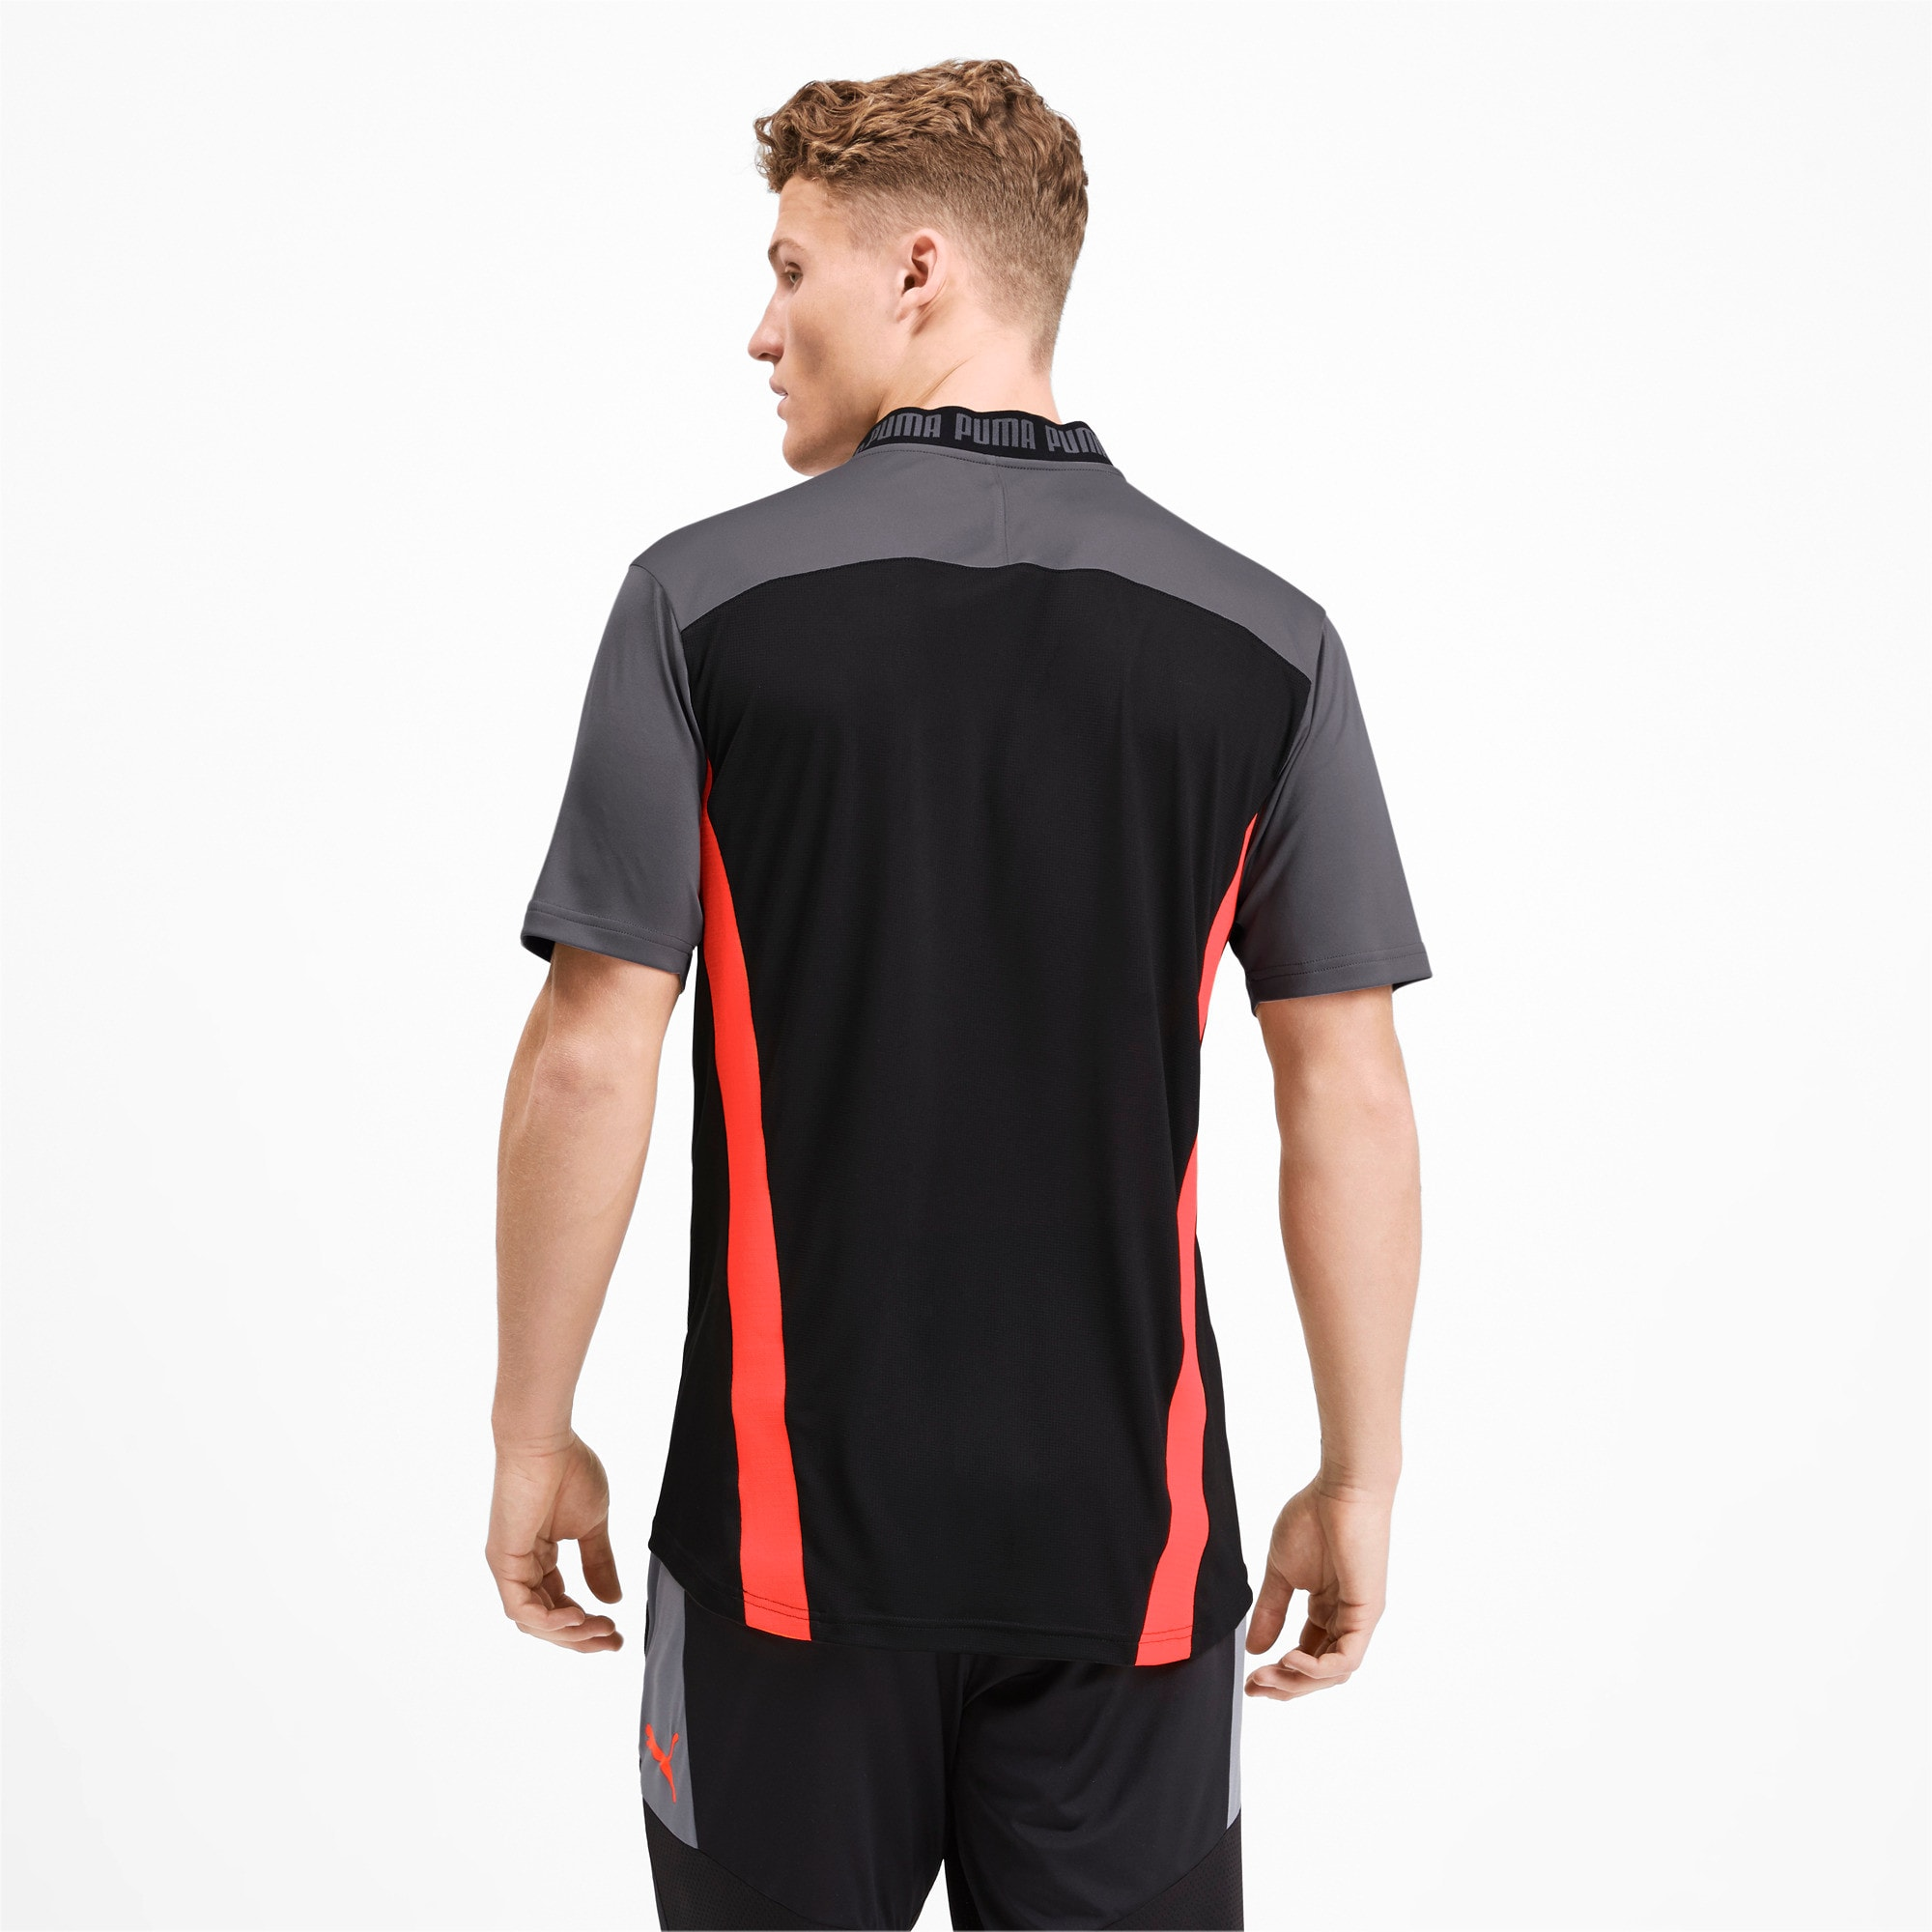 Thumbnail 2 of Pro T-shirt voor heren, Puma Black-Nrgy Red, medium